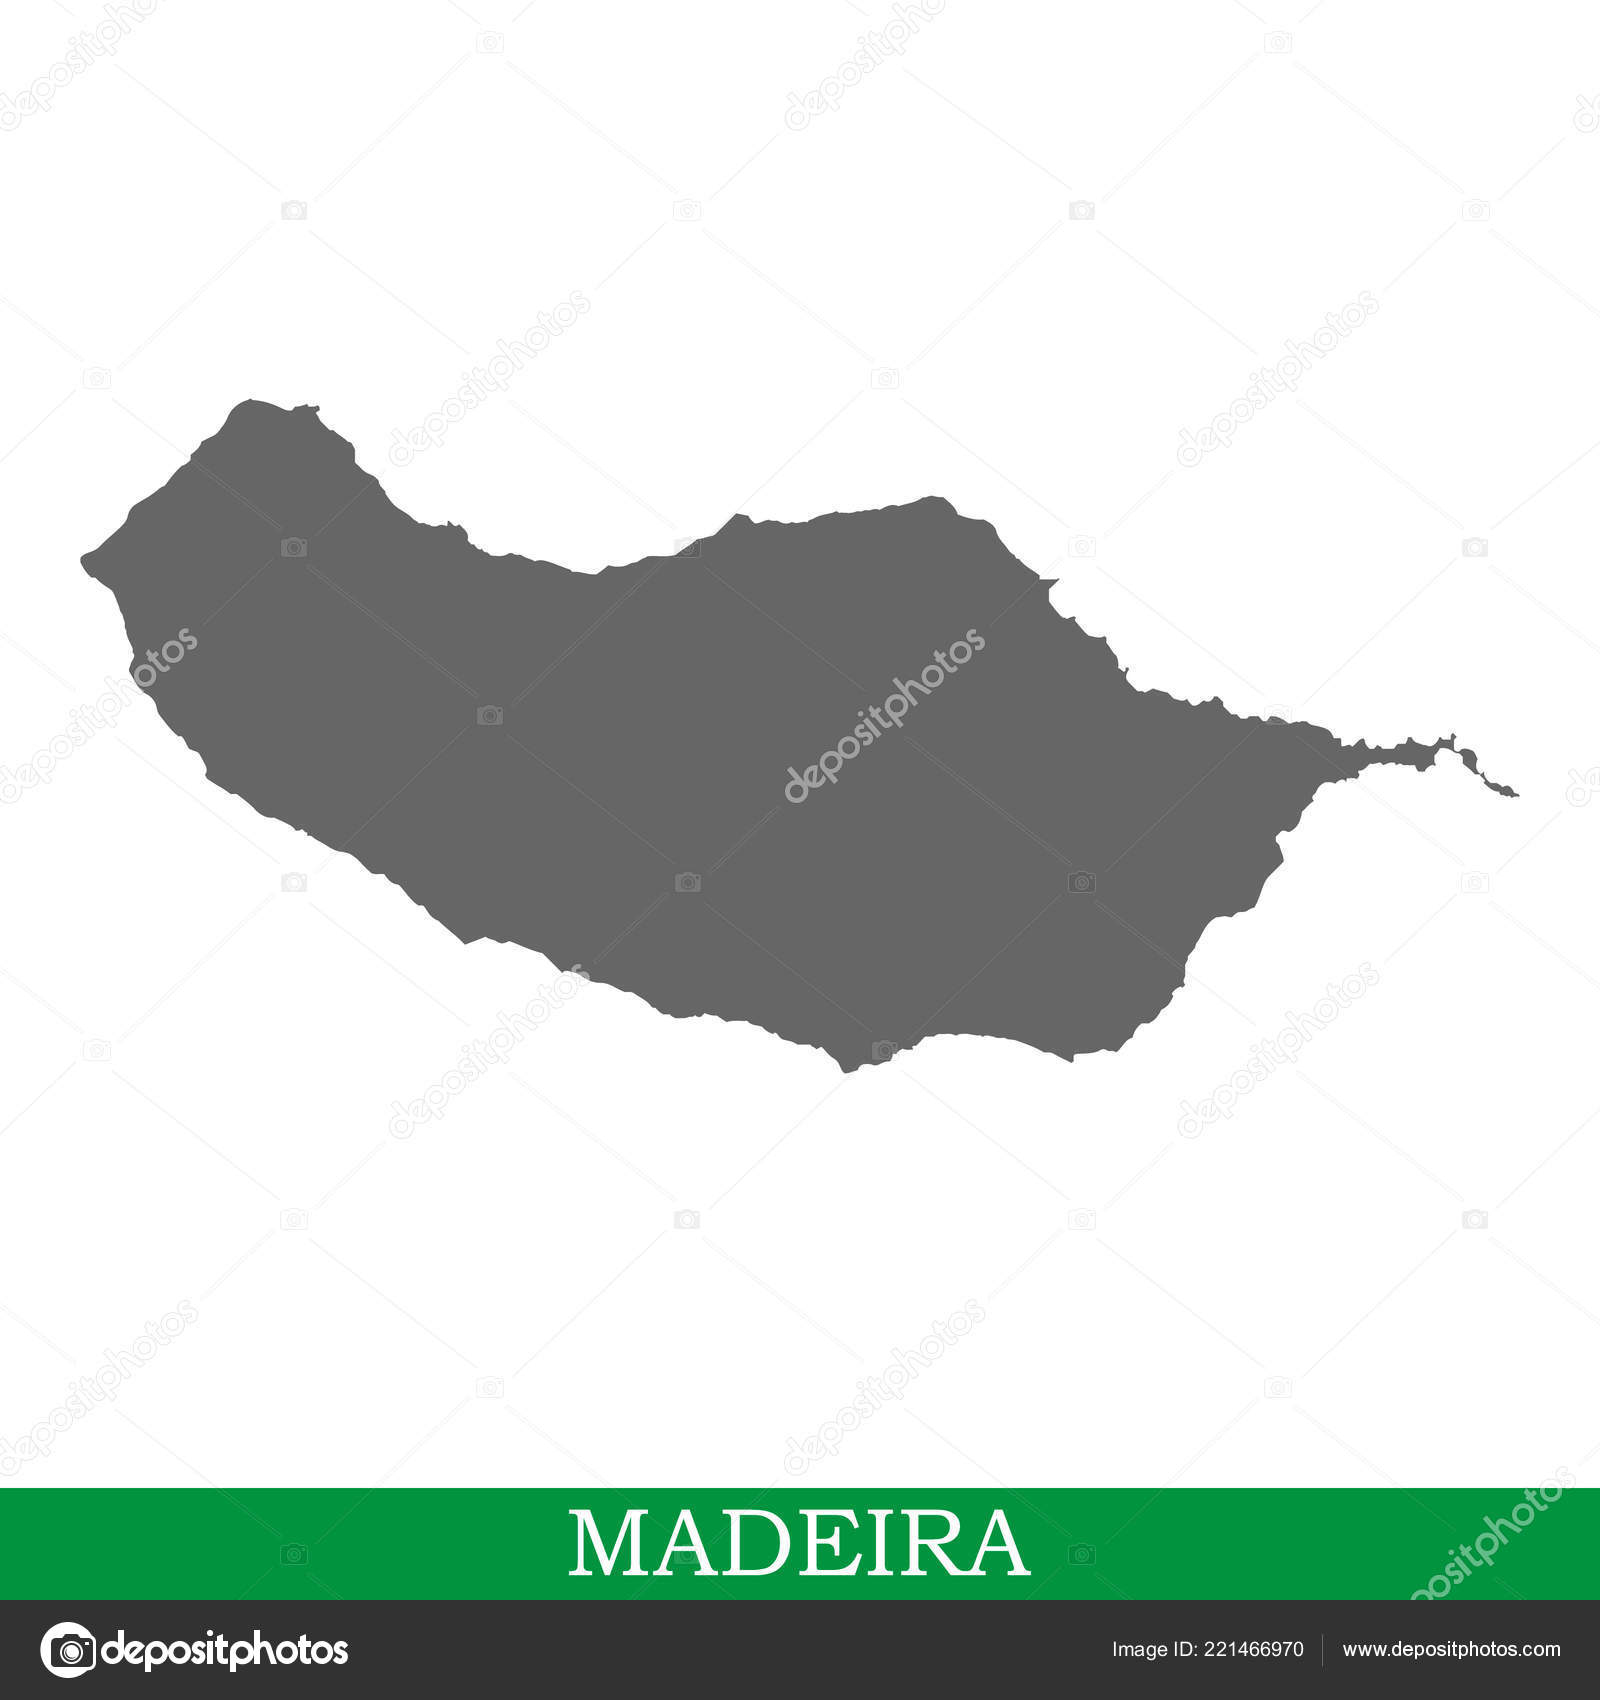 High Quality Map Madeira Island Portugal — Stock Vector ... on bermuda map, jamaica map, lisbon map, casiquiare canal map, mauritius map, vila franca do campo map, australia map, mayotte map, uzbekistan map, bussaco map, broadview heights map, taiwan map, portugal map, rheinhessen map, algarve region map, mt lookout map, lake titicaca map, west indies map, slovenia map, canary islands map,